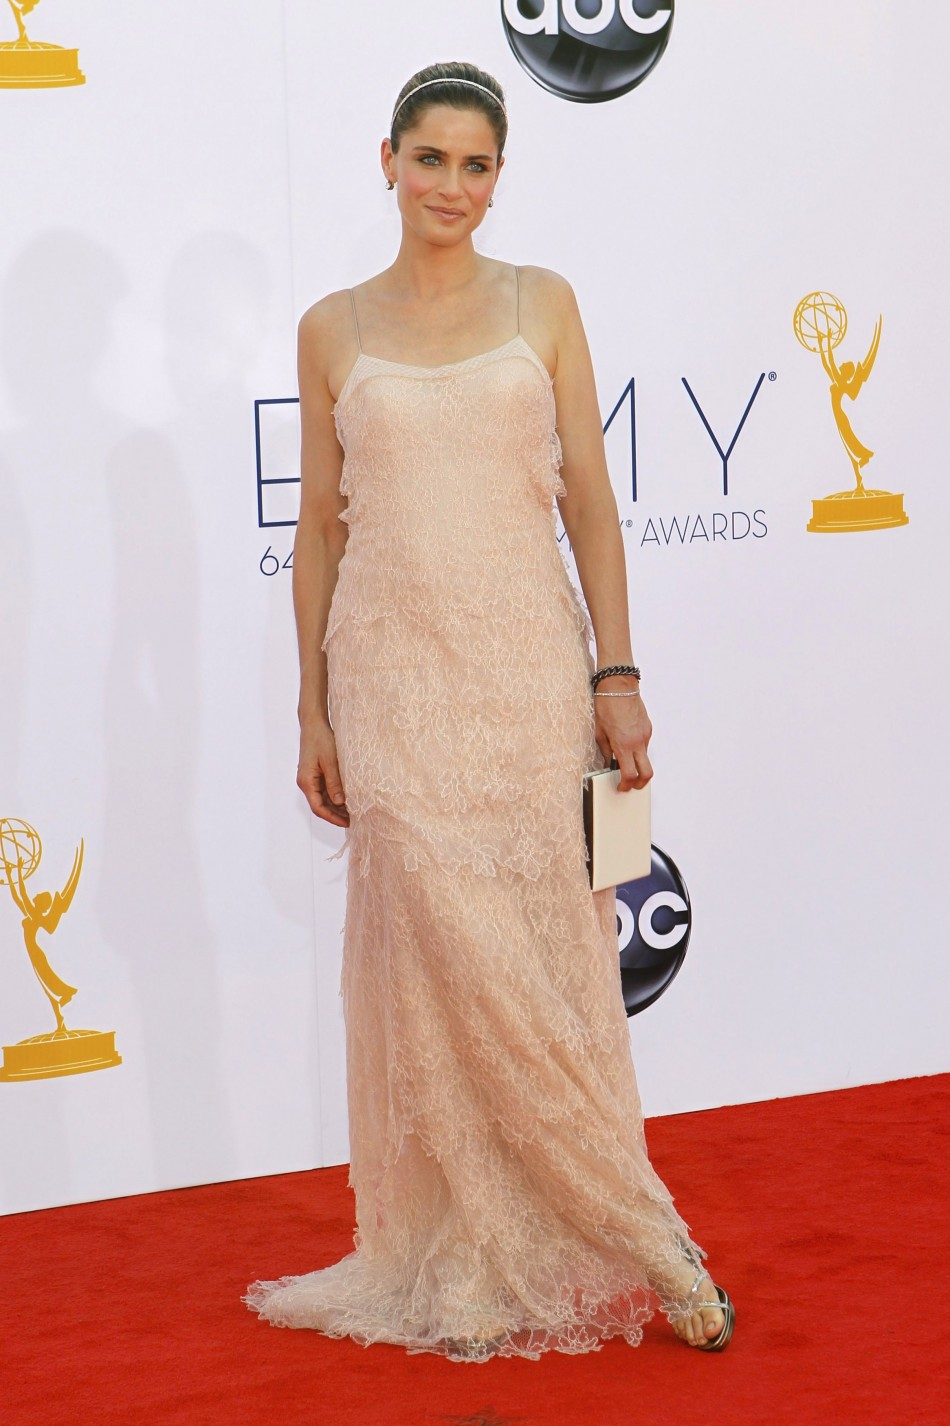 Actress Amanda Peet arrives at the 64th Primetime Emmy Awards in Los Angeles